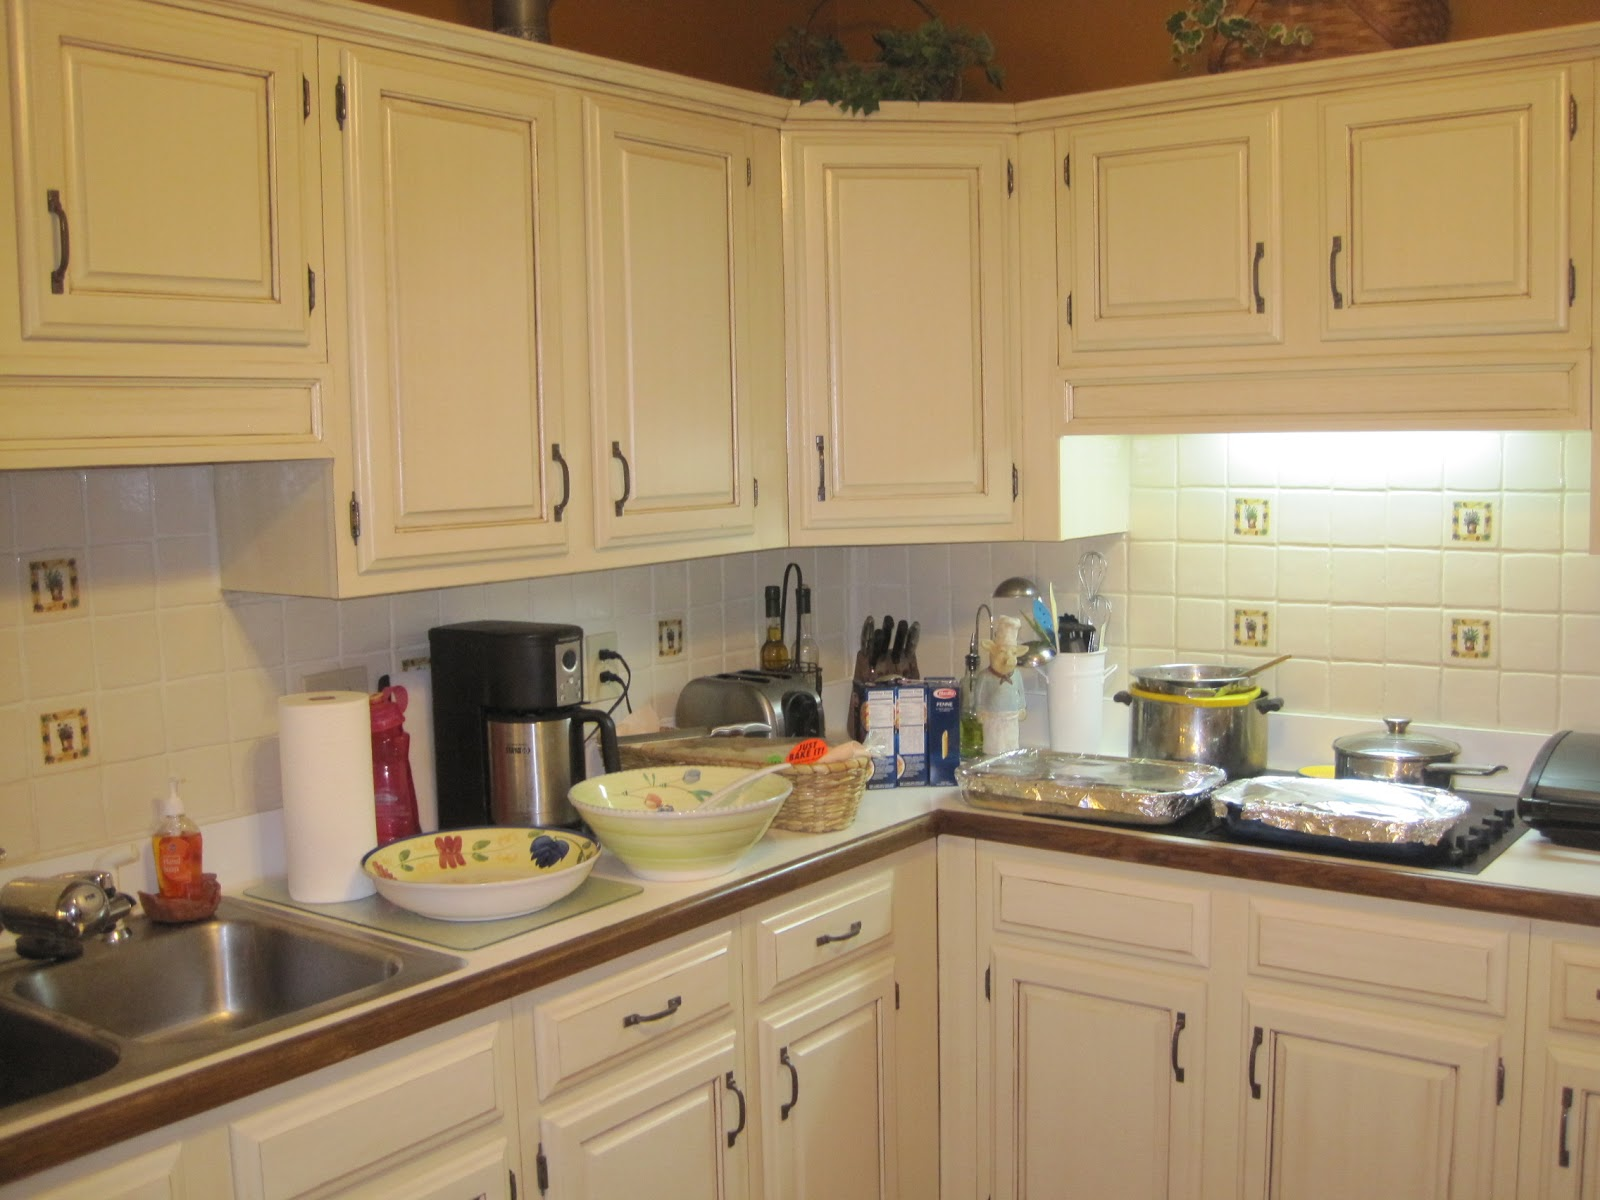 Mad Mary's Junk Yard: My friend and I refinish kitchen and ...